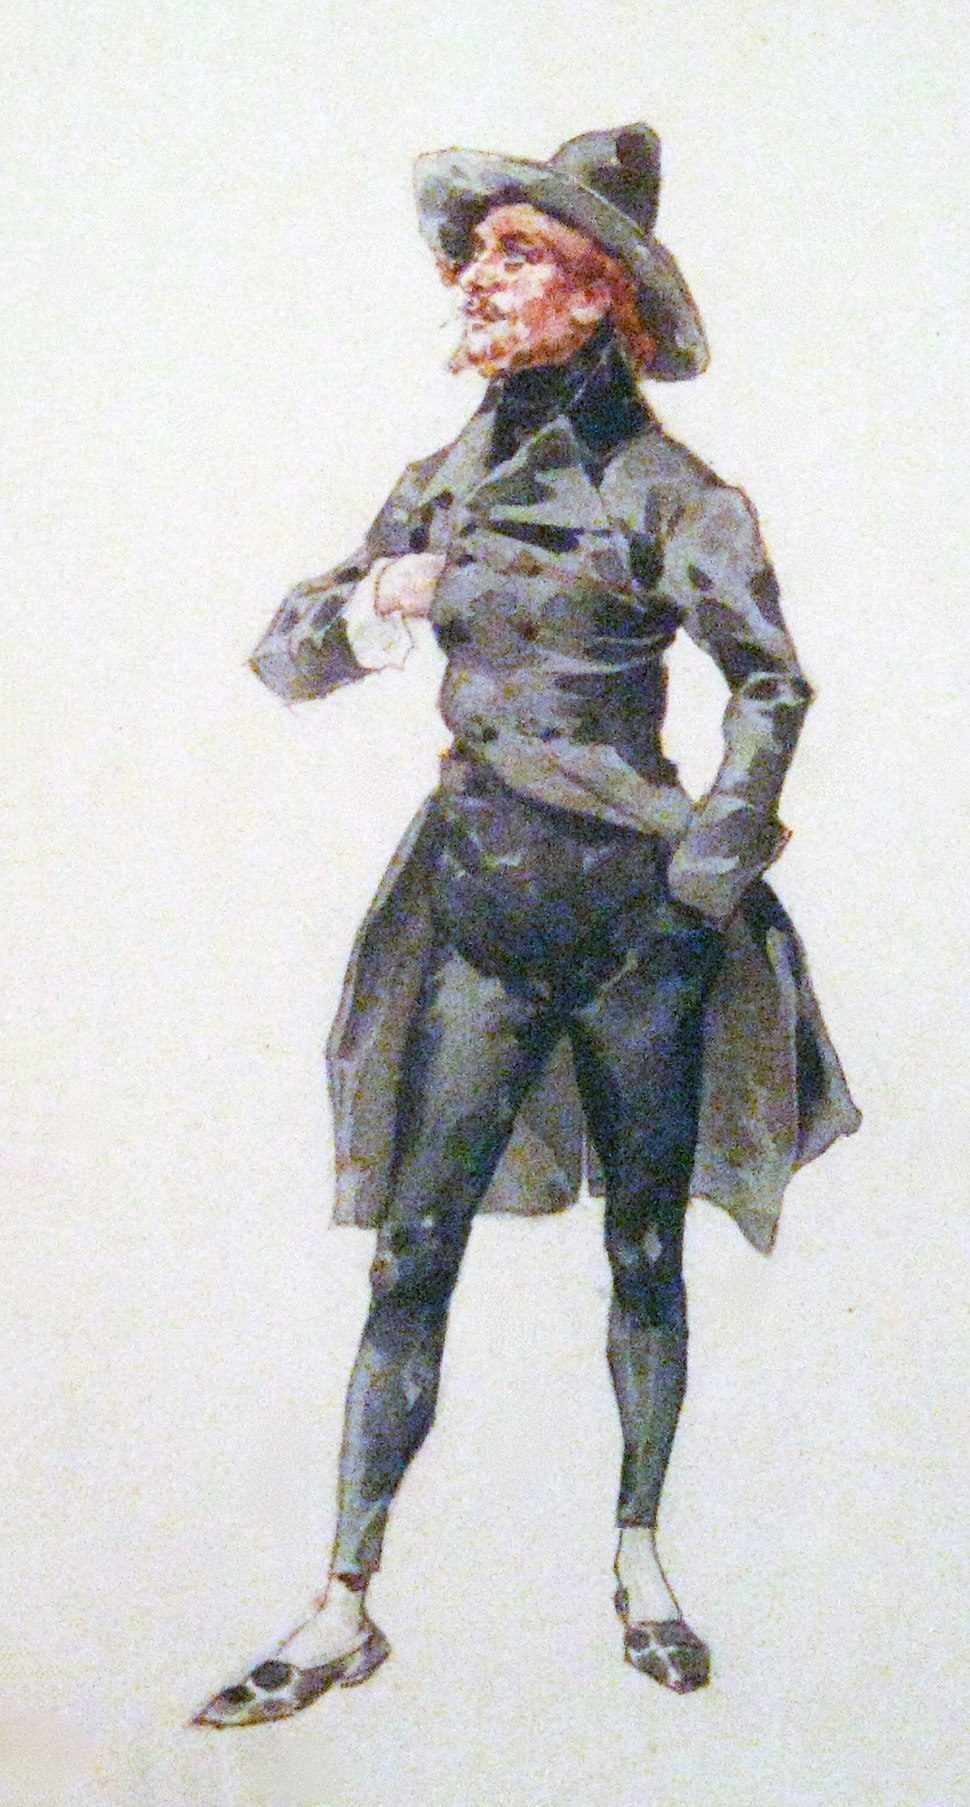 Rodolfo from La Boheme (1896)